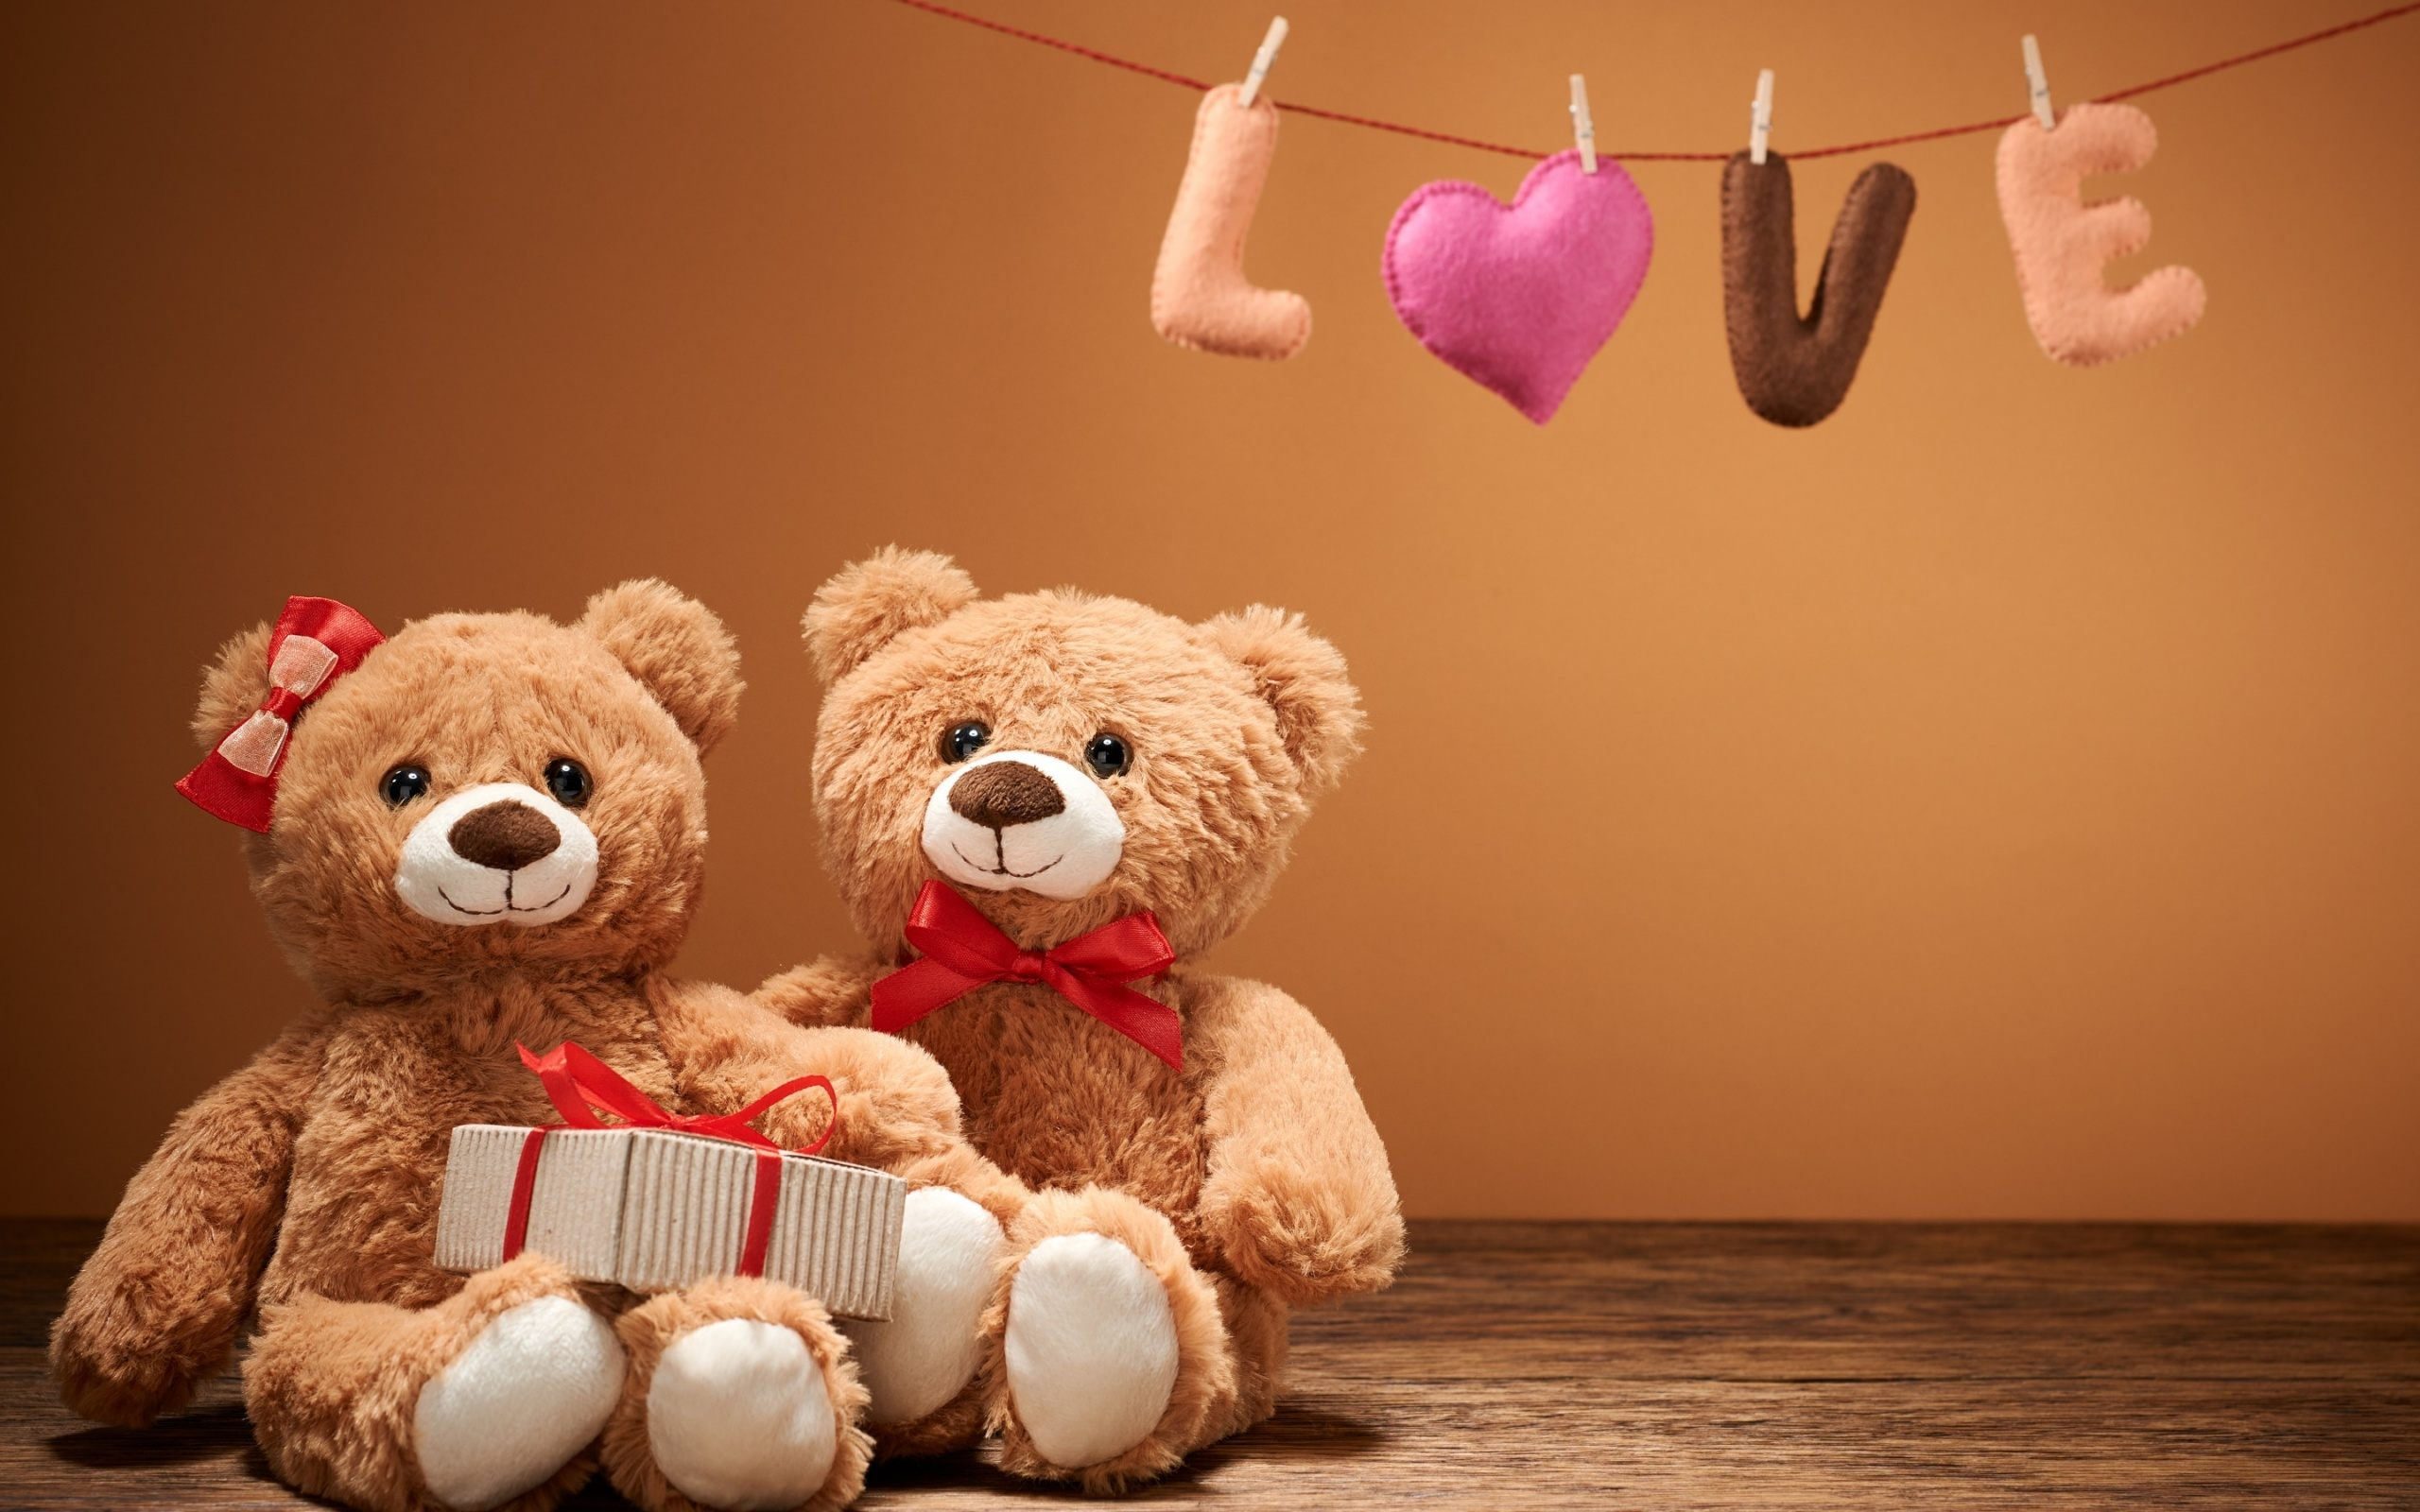 Teddy bear wallpapers for facebook